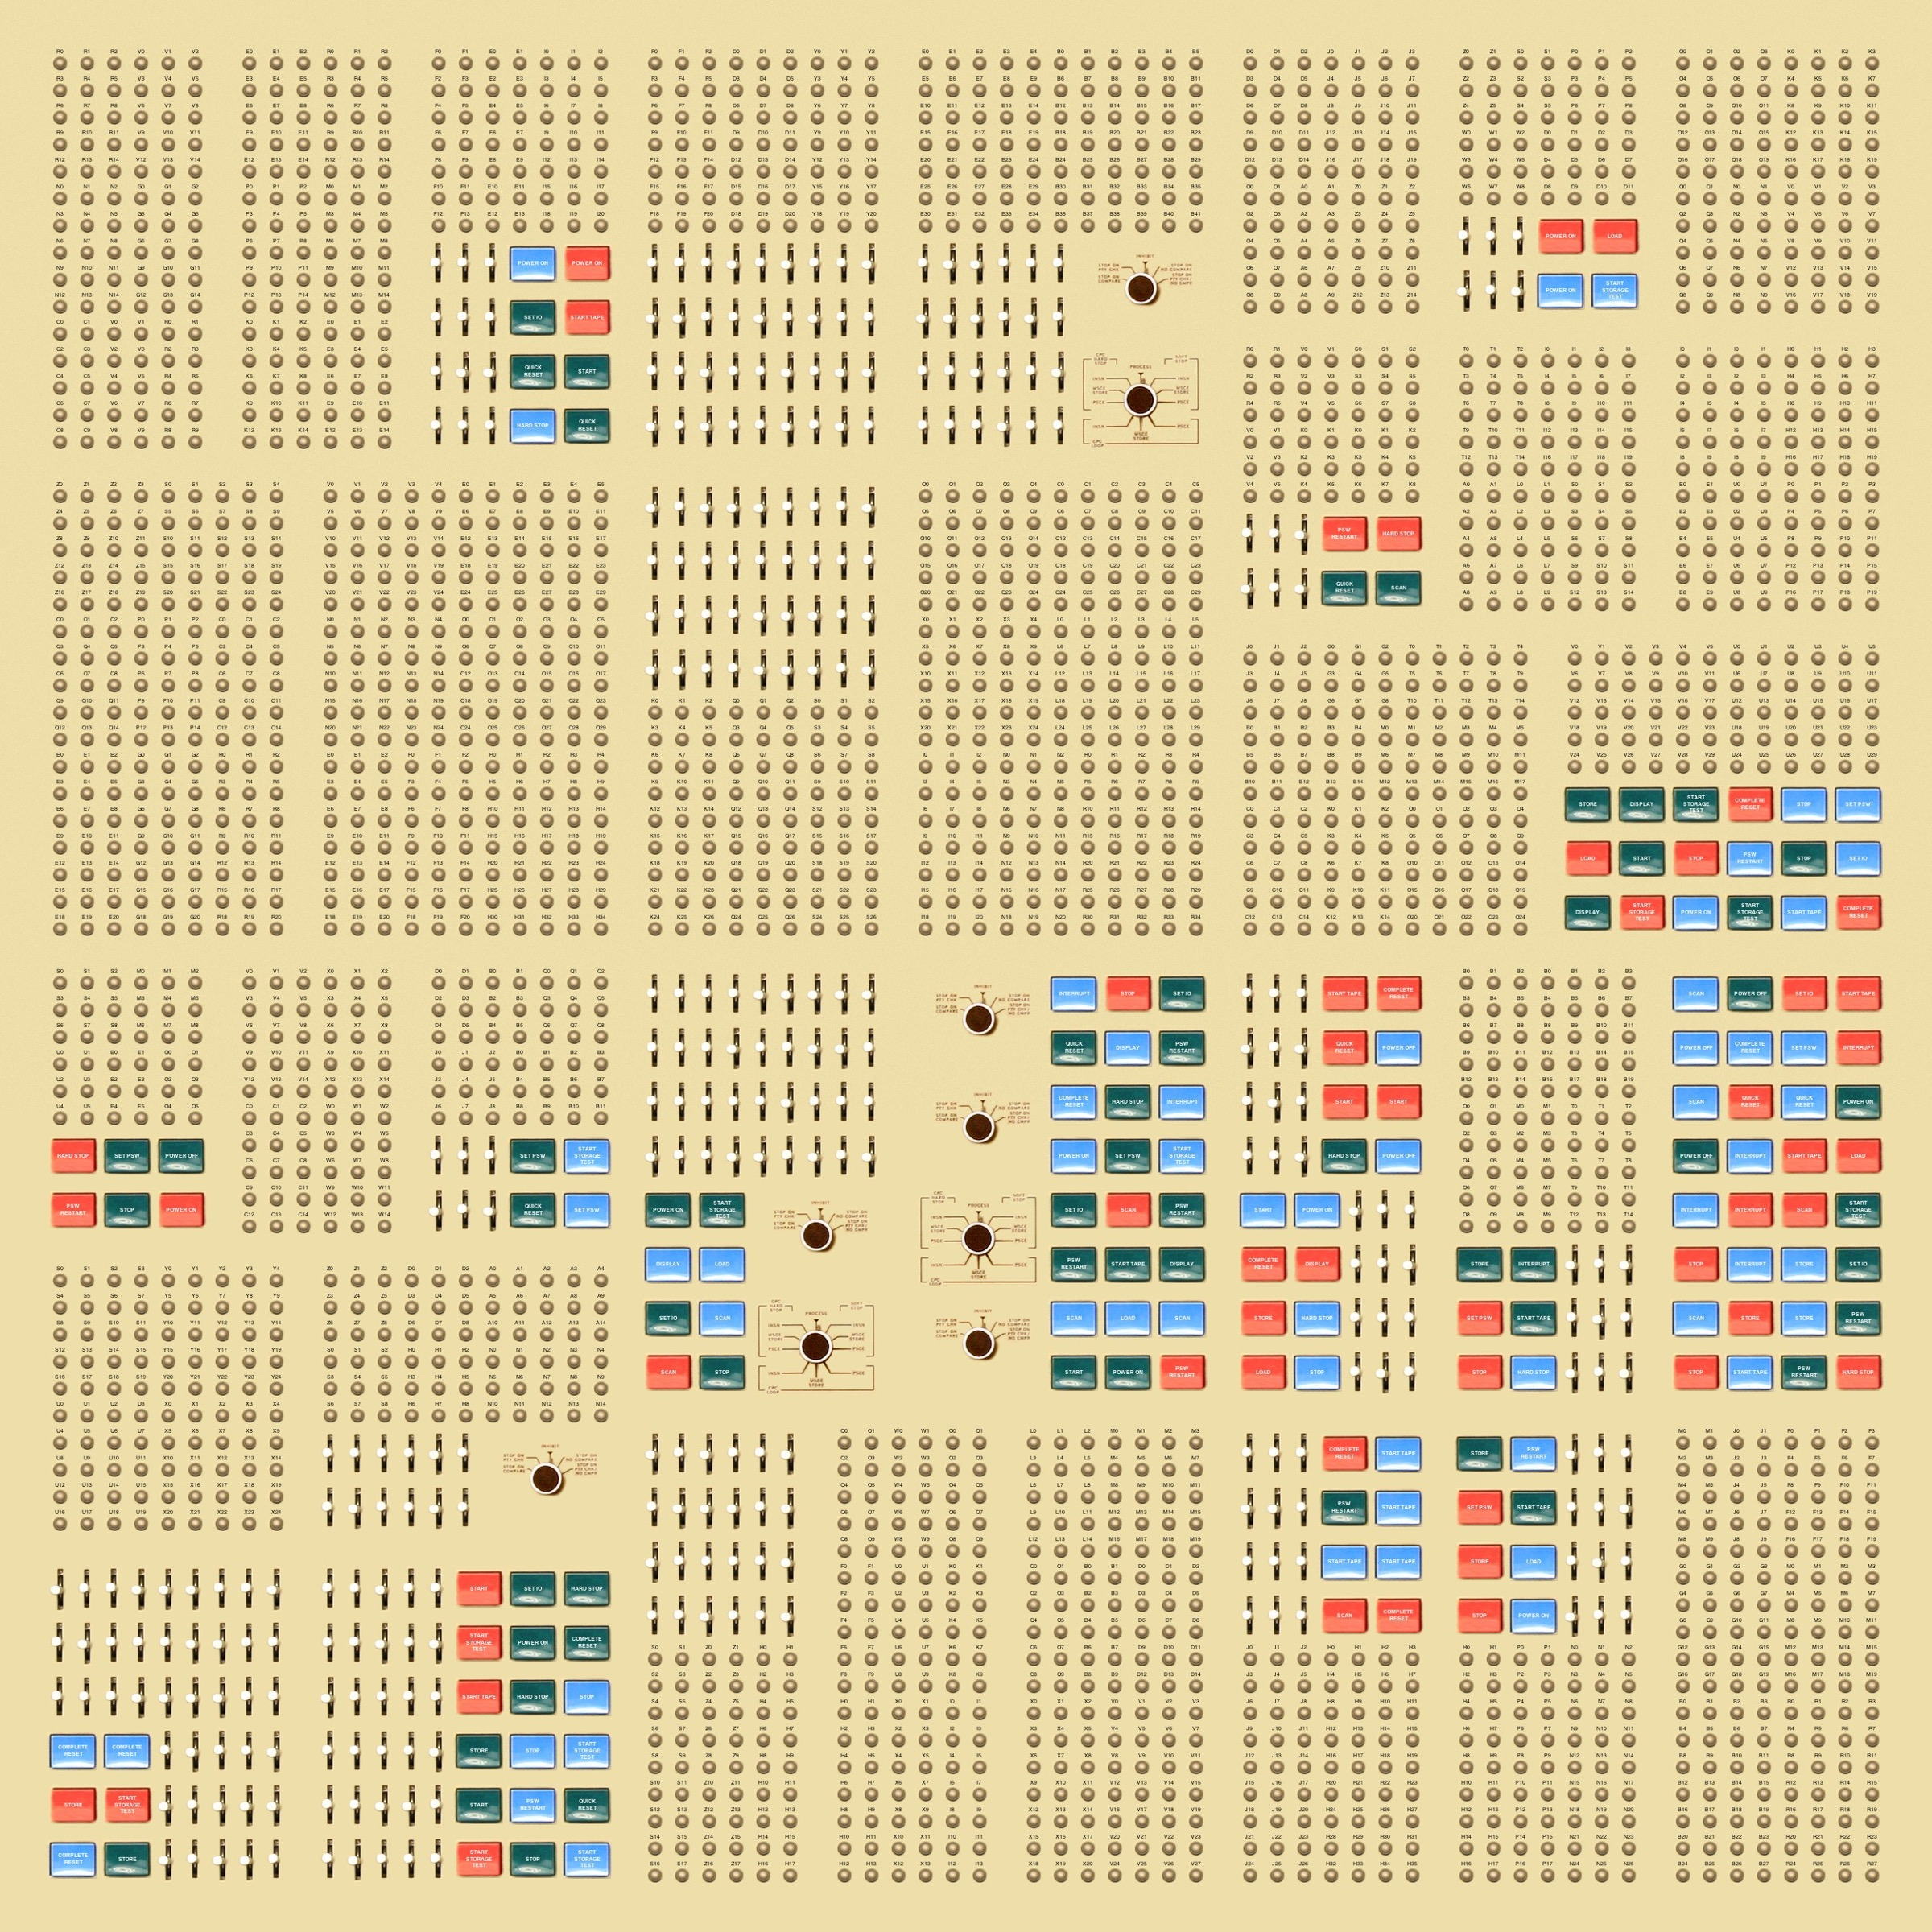 Buttons, levers, and knobs from computers of the 1960s arranged in a randomly generated grid.